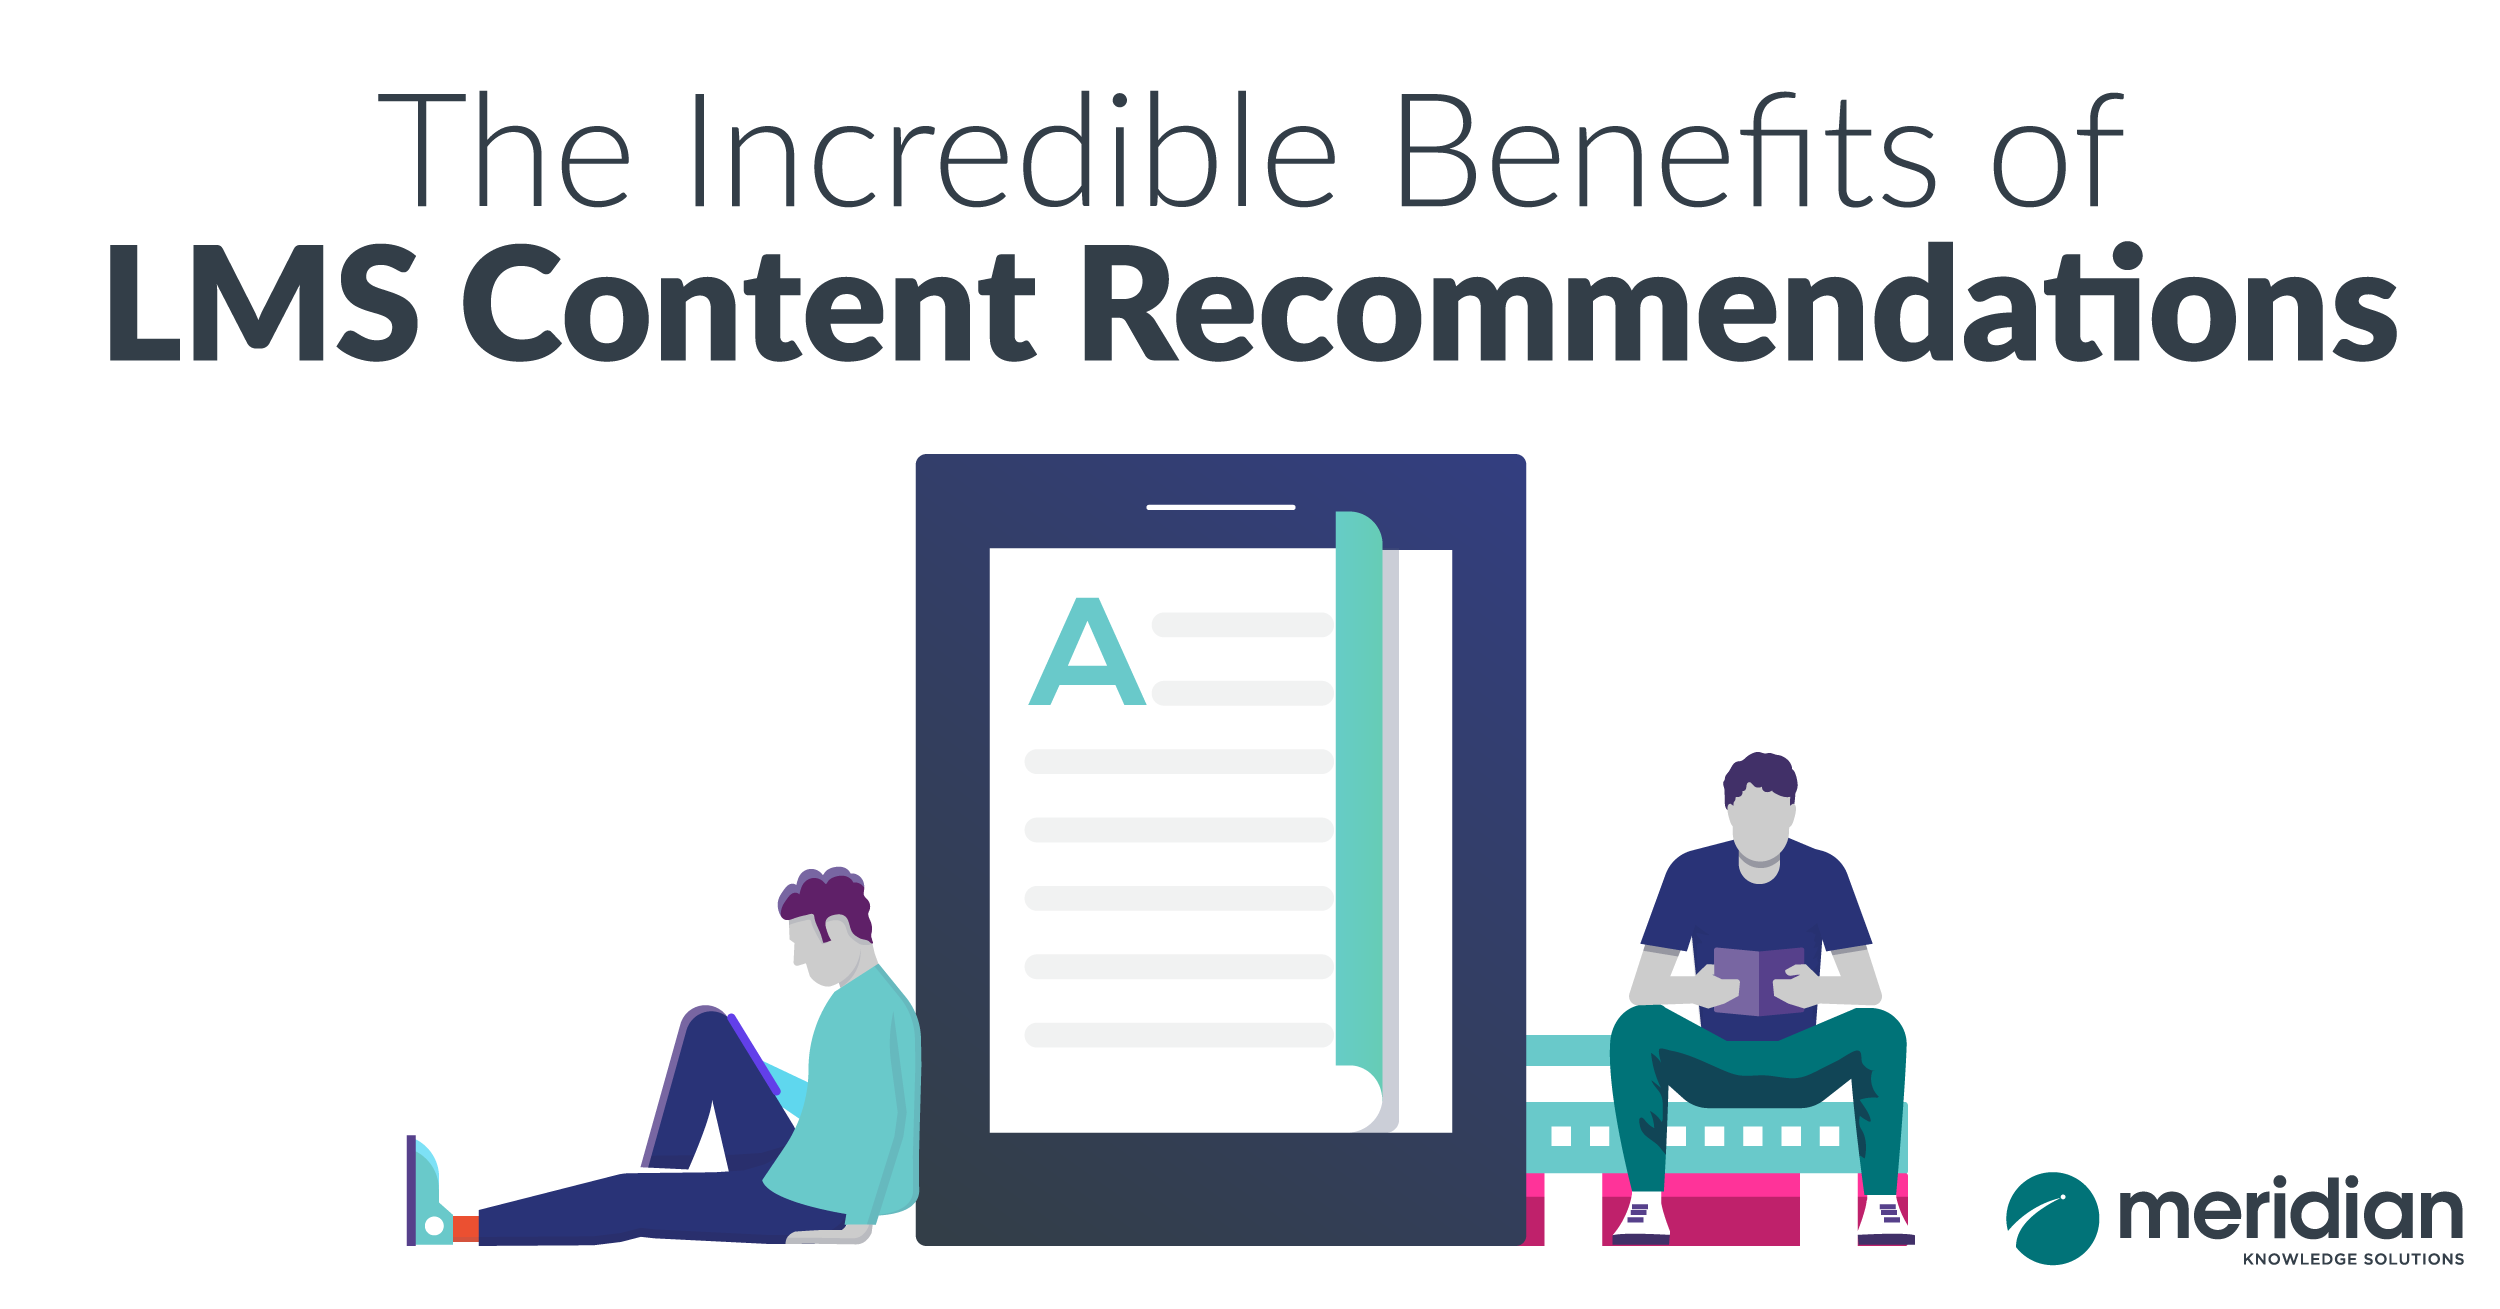 The Incredible Benefits of LMS Content Recommendations